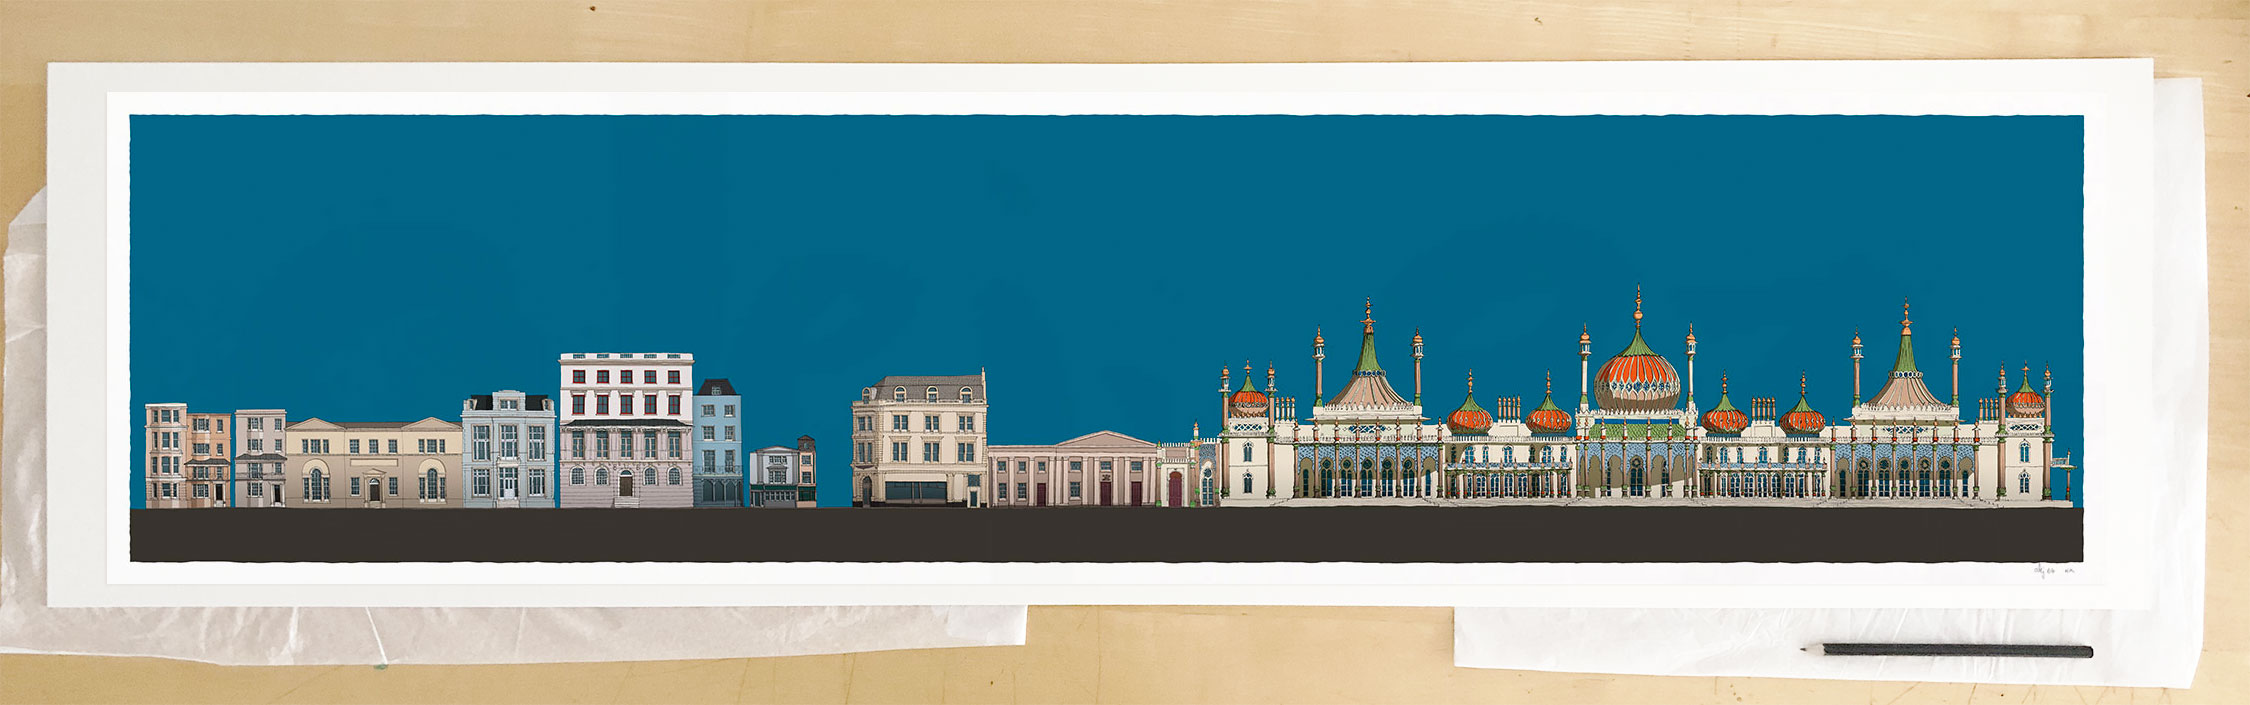 Fine art print by UK artist alej ez titled Hers and His Fitzherbert and George IV Brighton Pavilion Ocean Blue